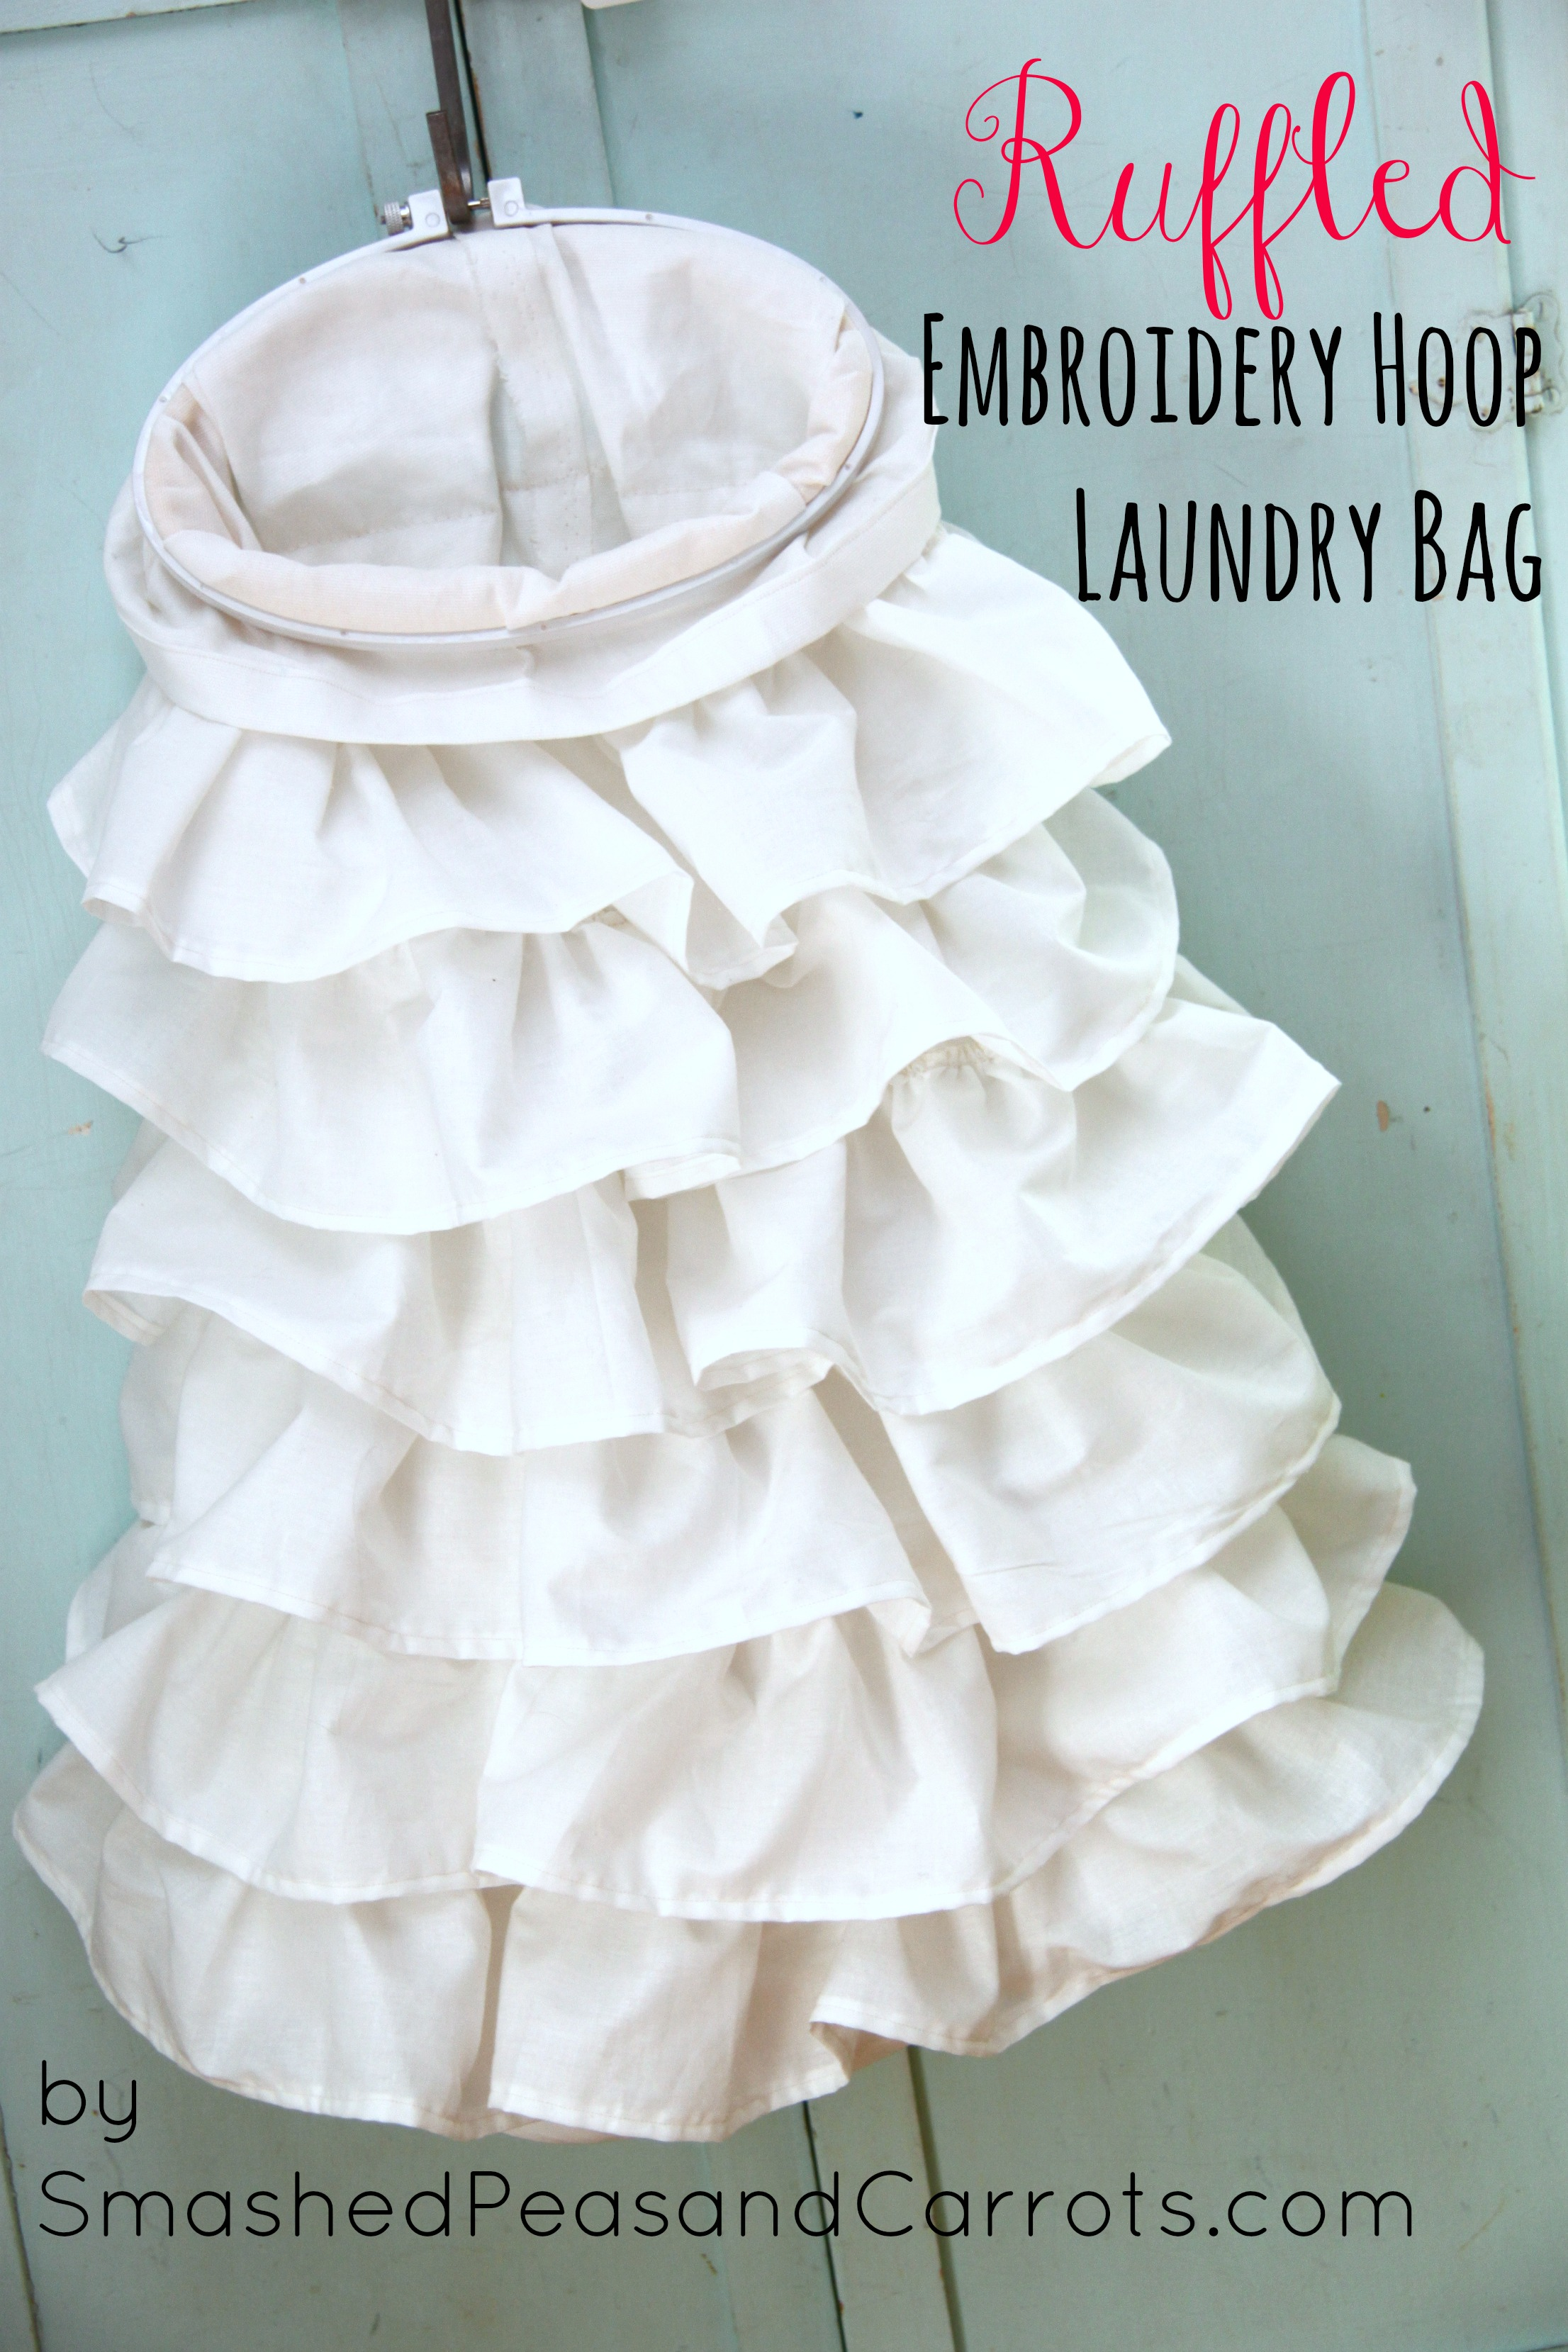 Home Sewn Ruffled Embroidery Hoop Laundry Bag Smashed